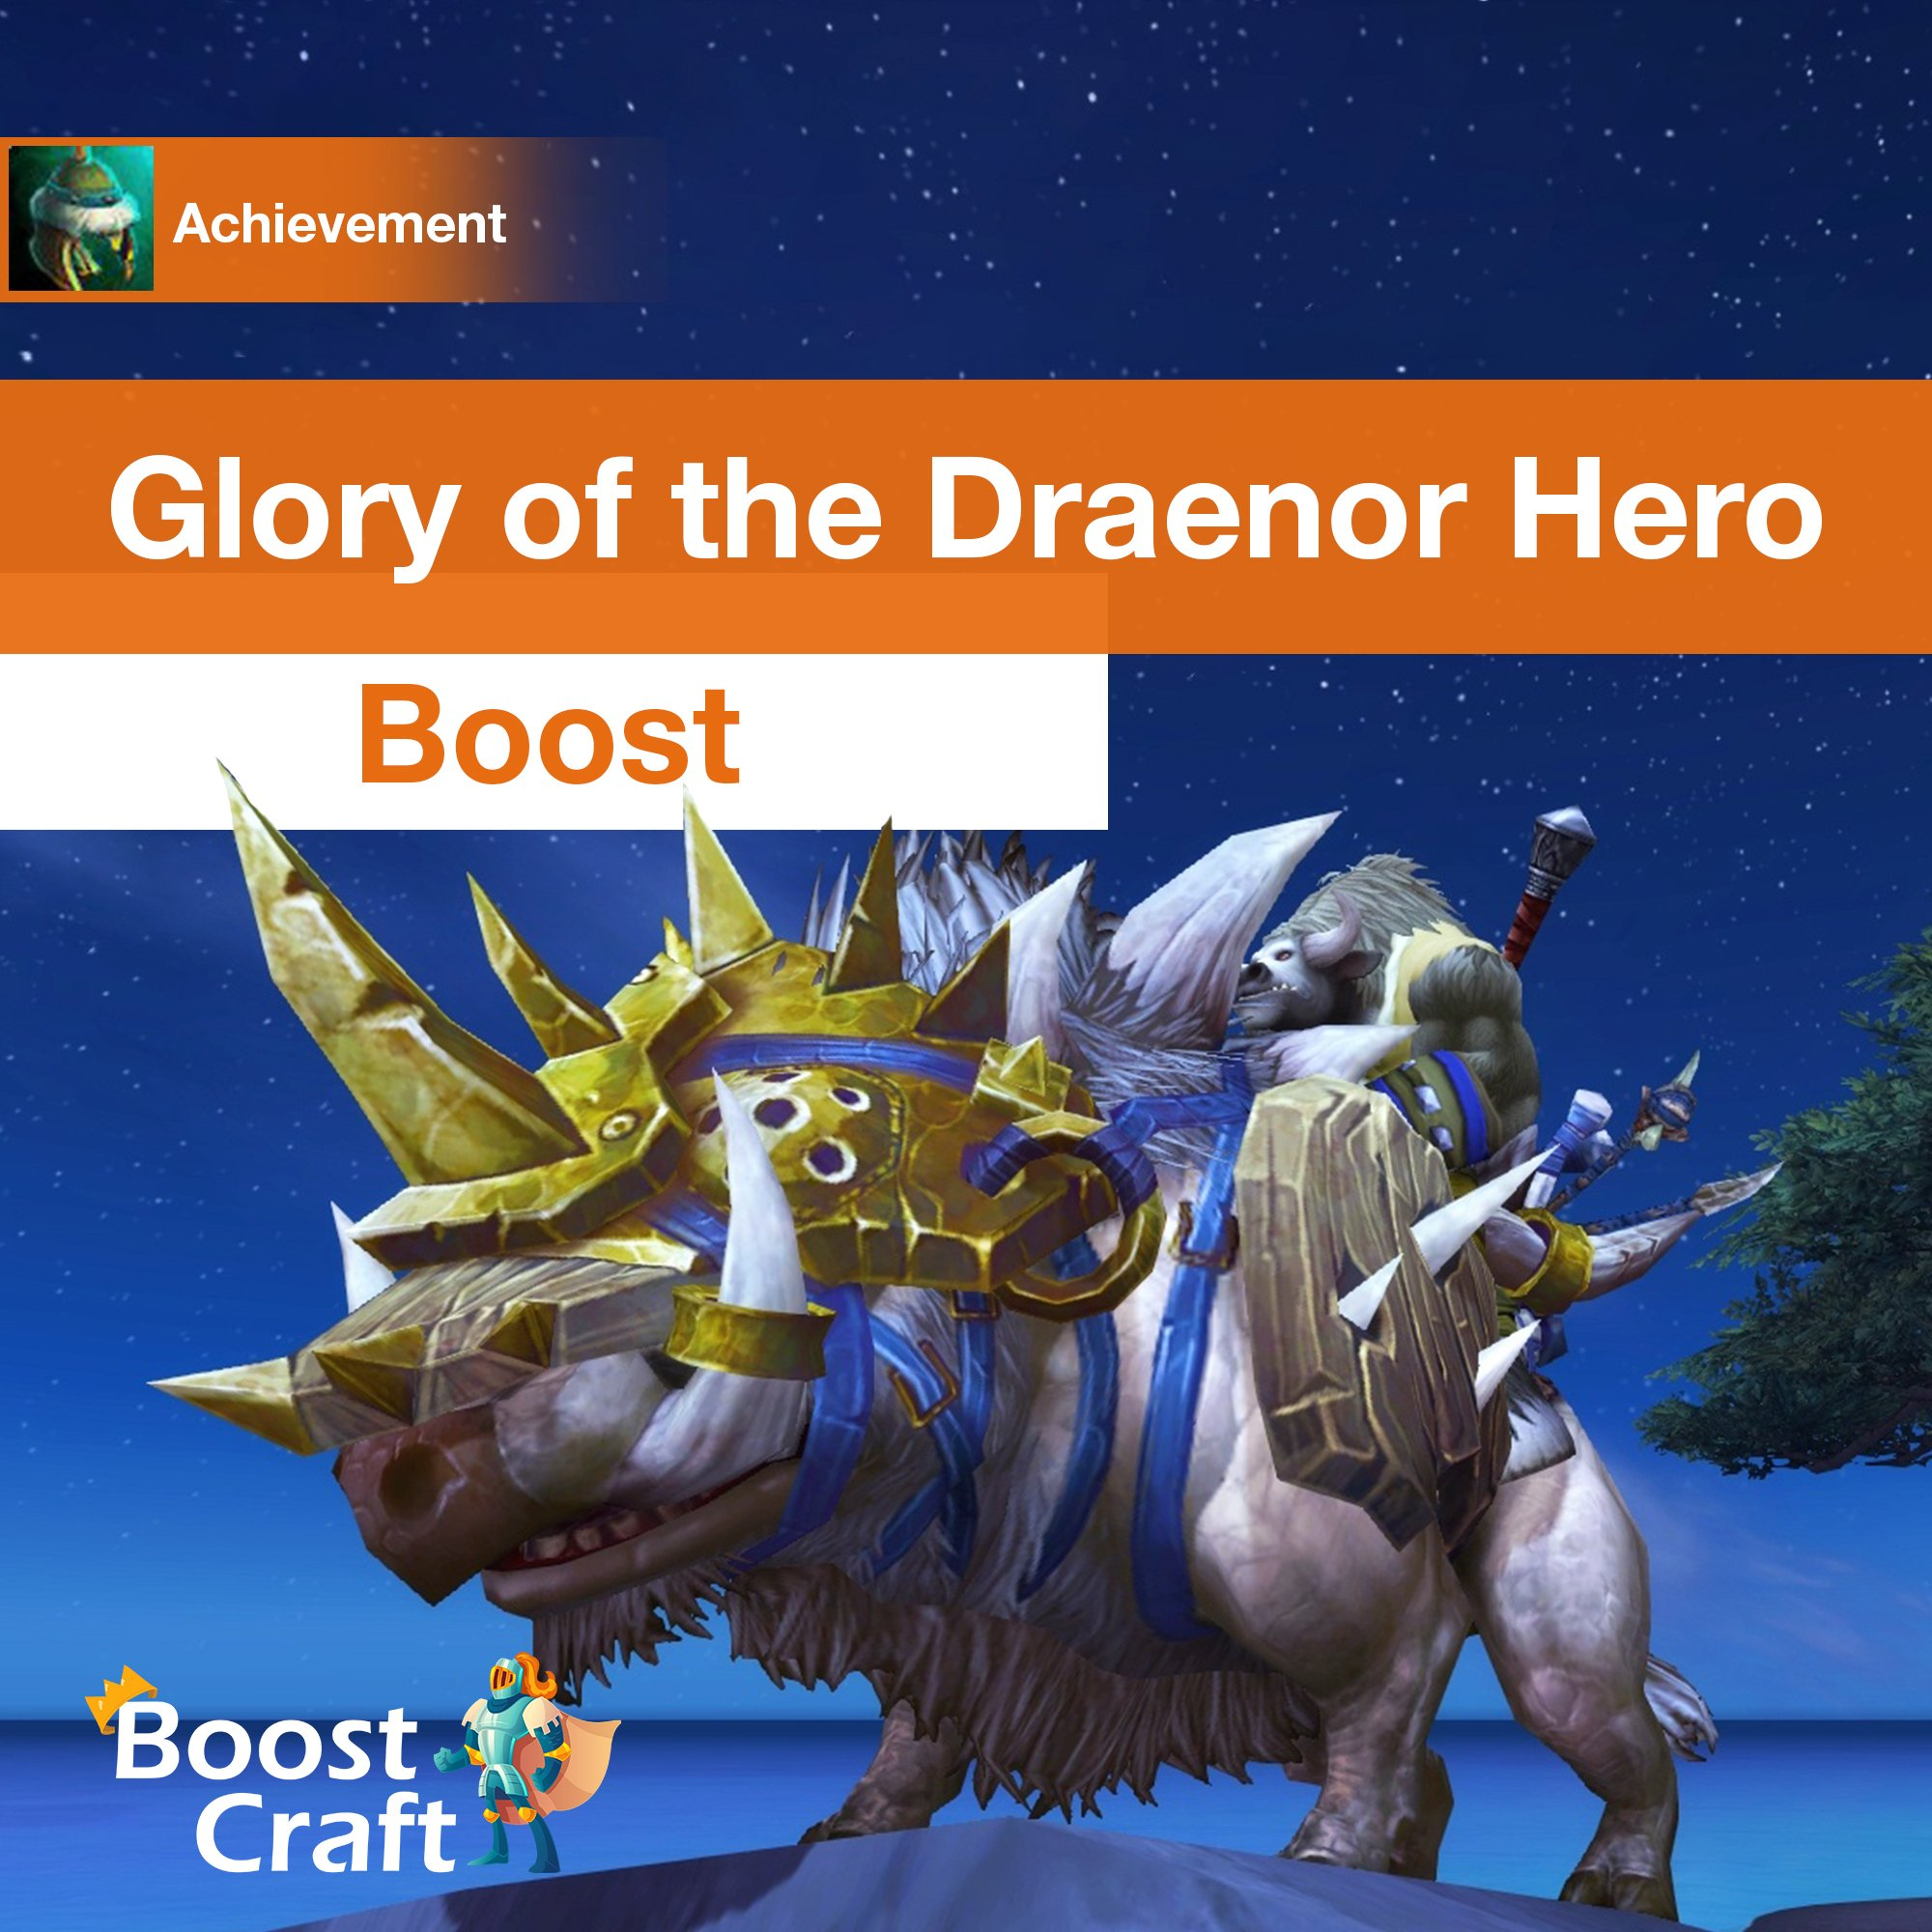 [Glory of the Draenor Hero] Boost